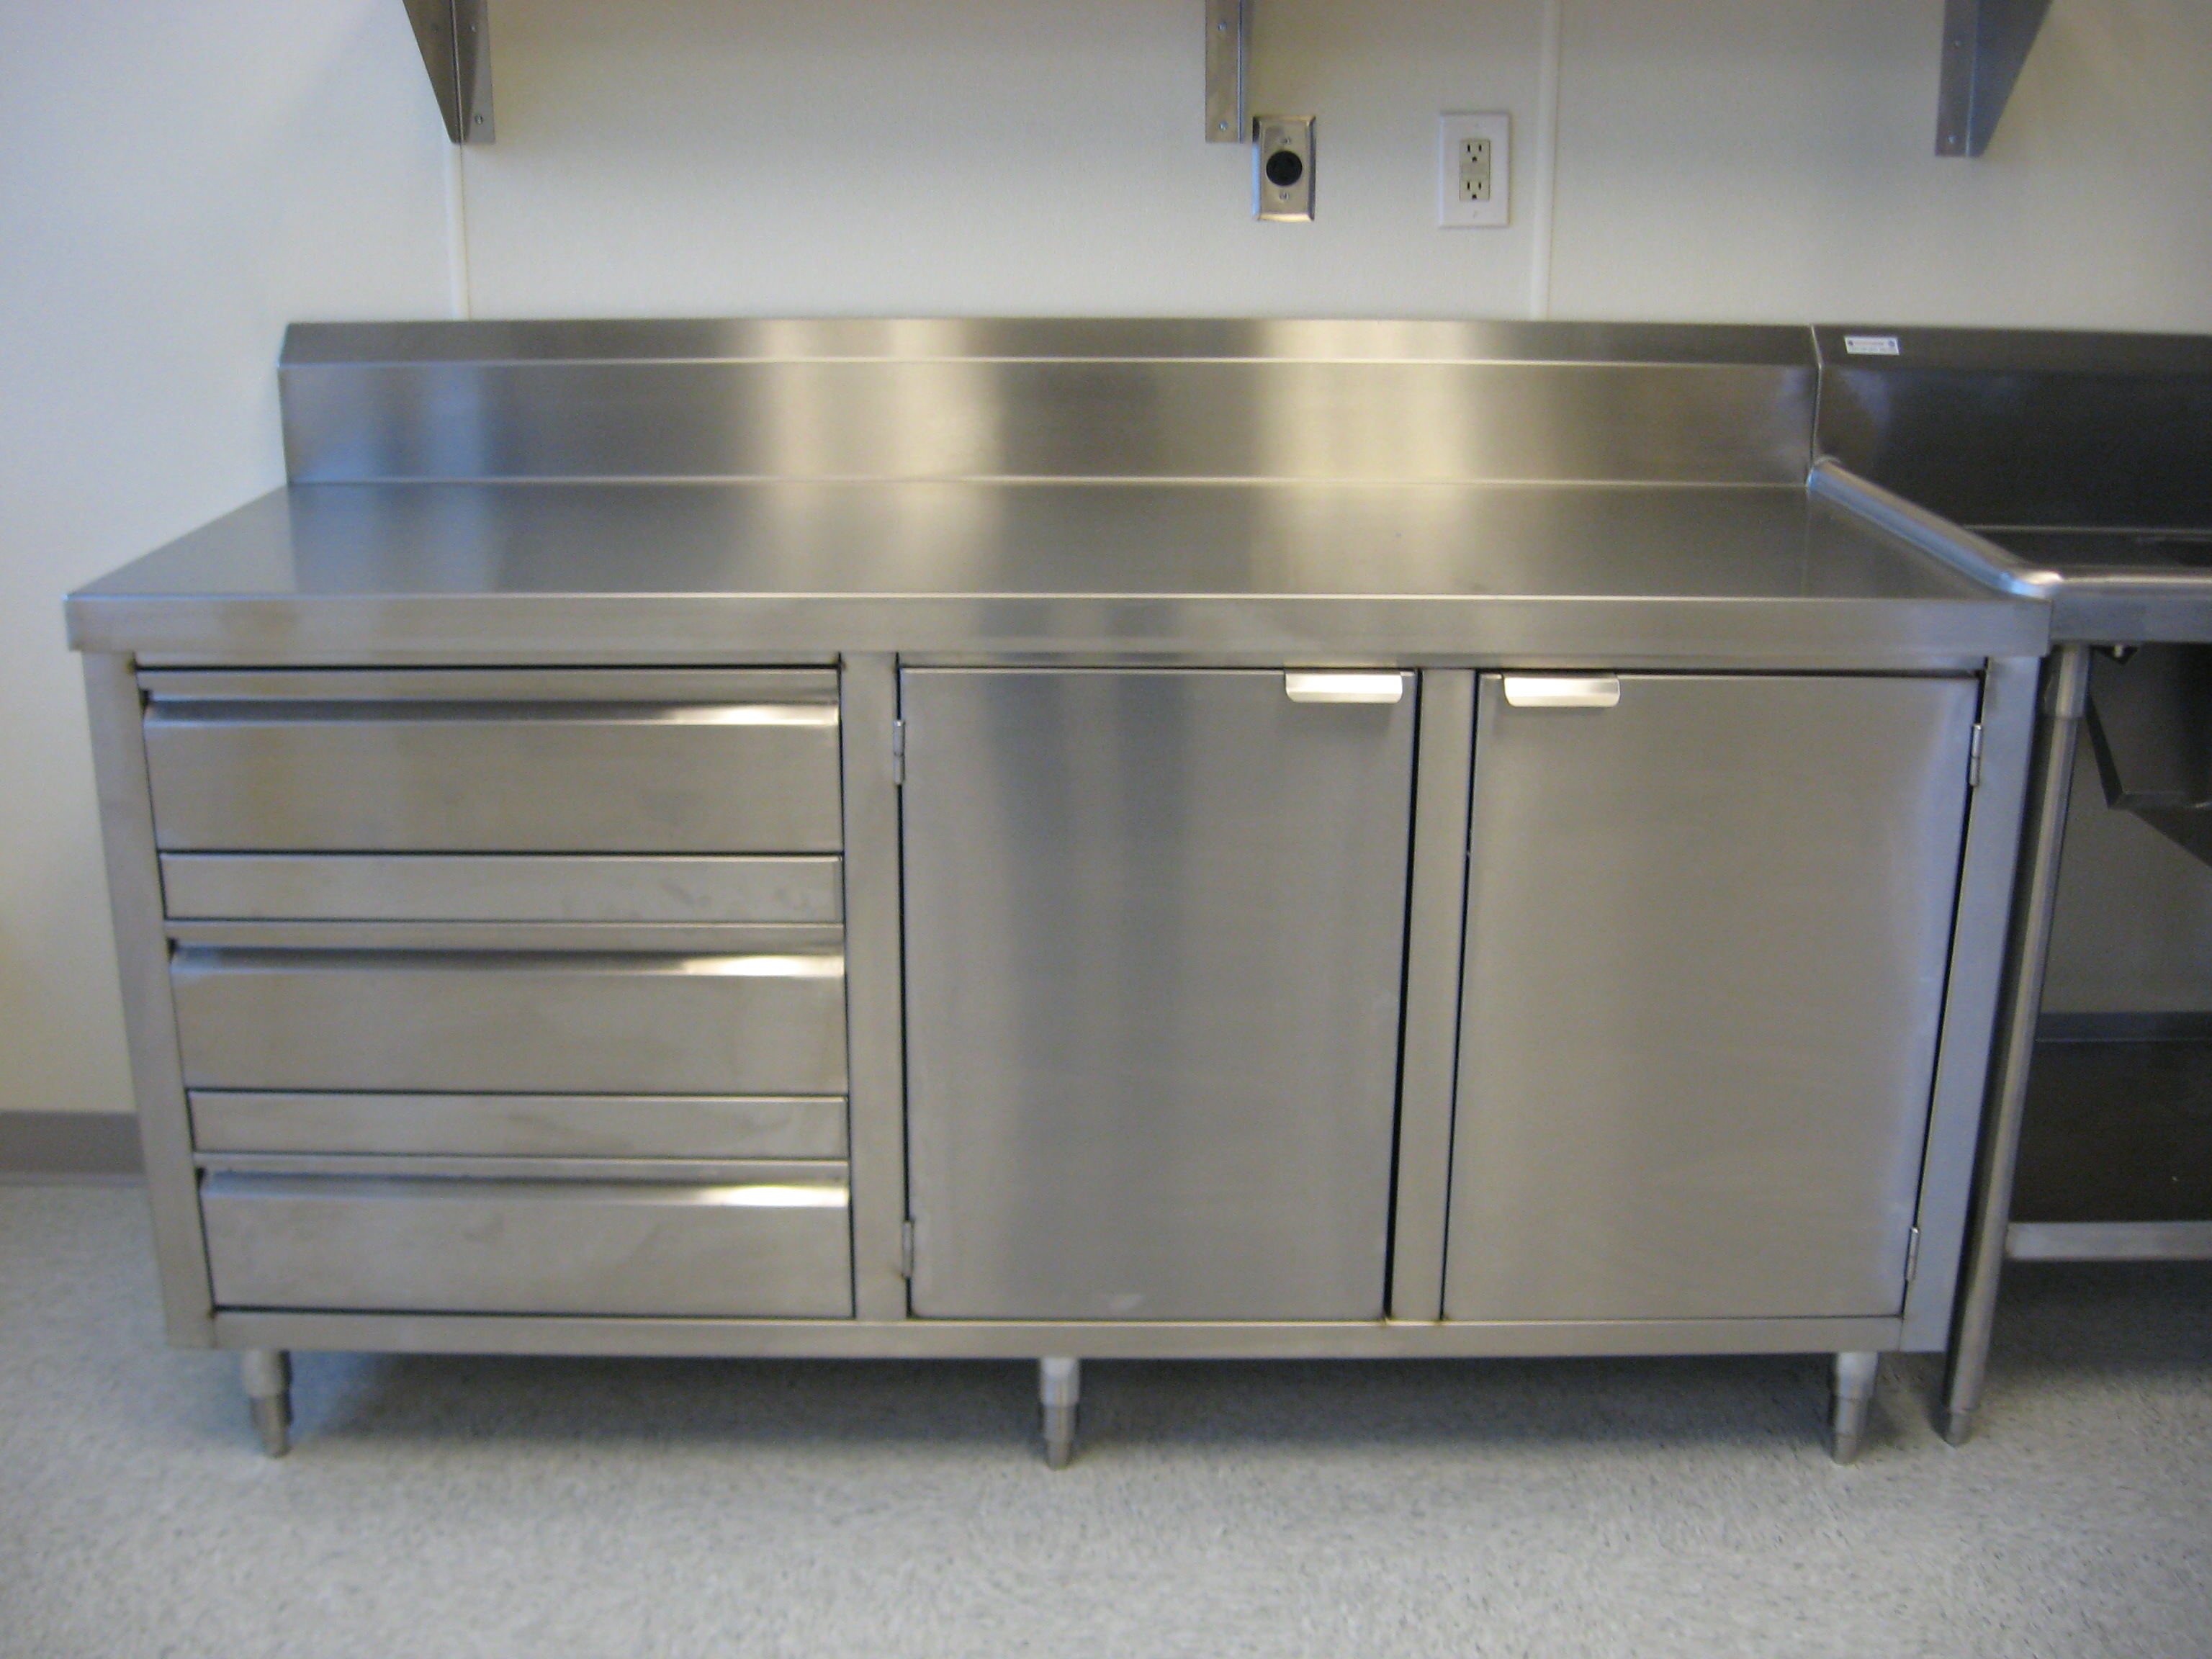 stainless steel kitchen cabinets how much does a island cost custom dish cabinet